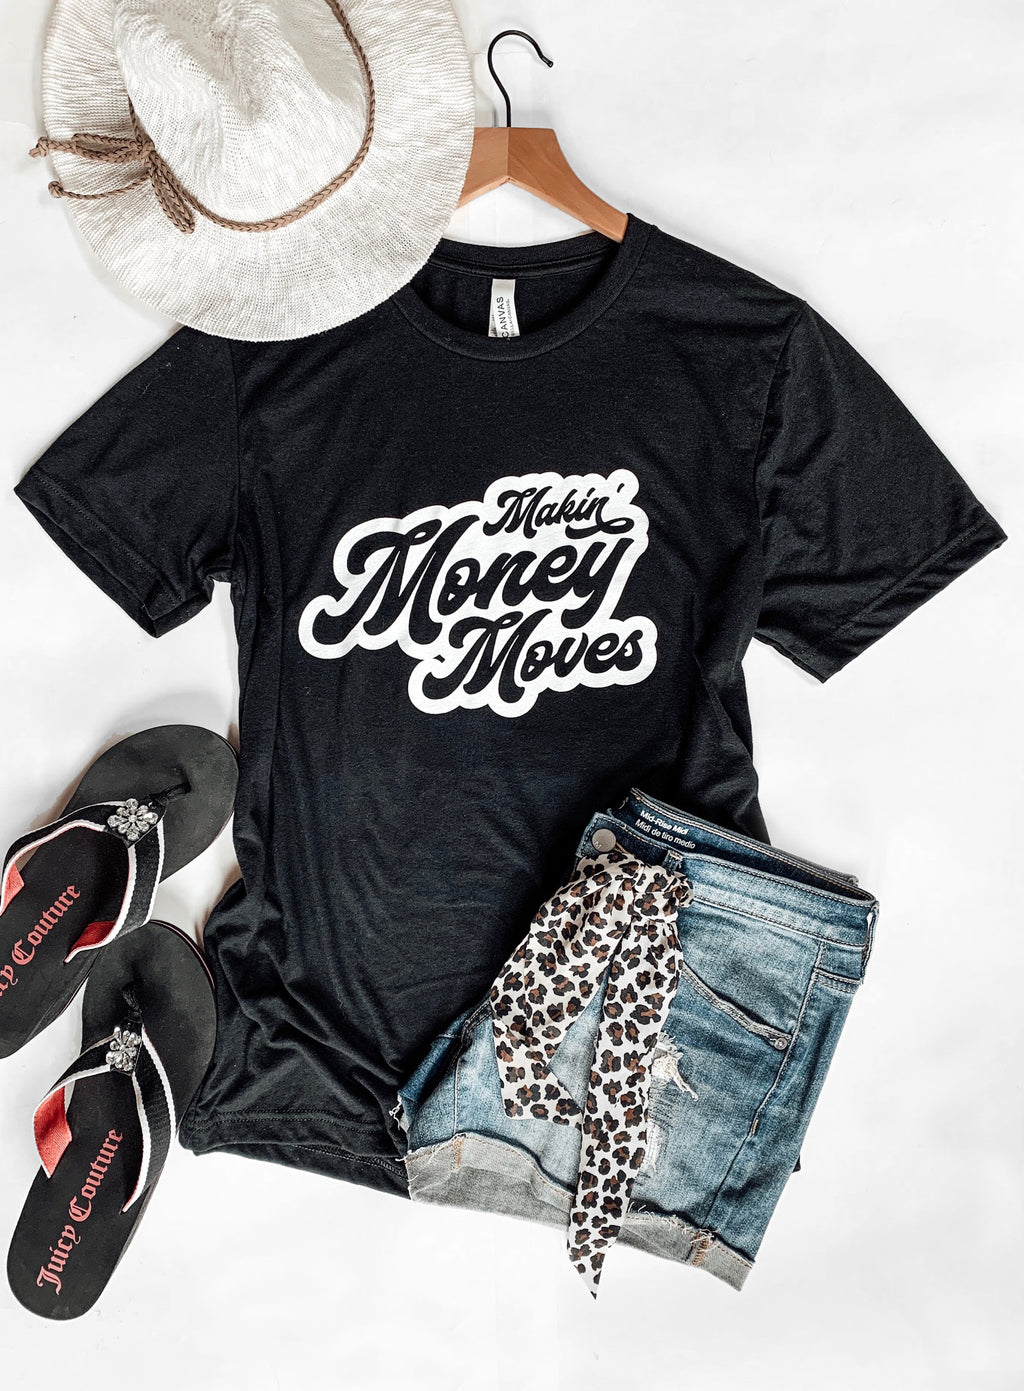 MAKIN' MONEY MOVES TEE